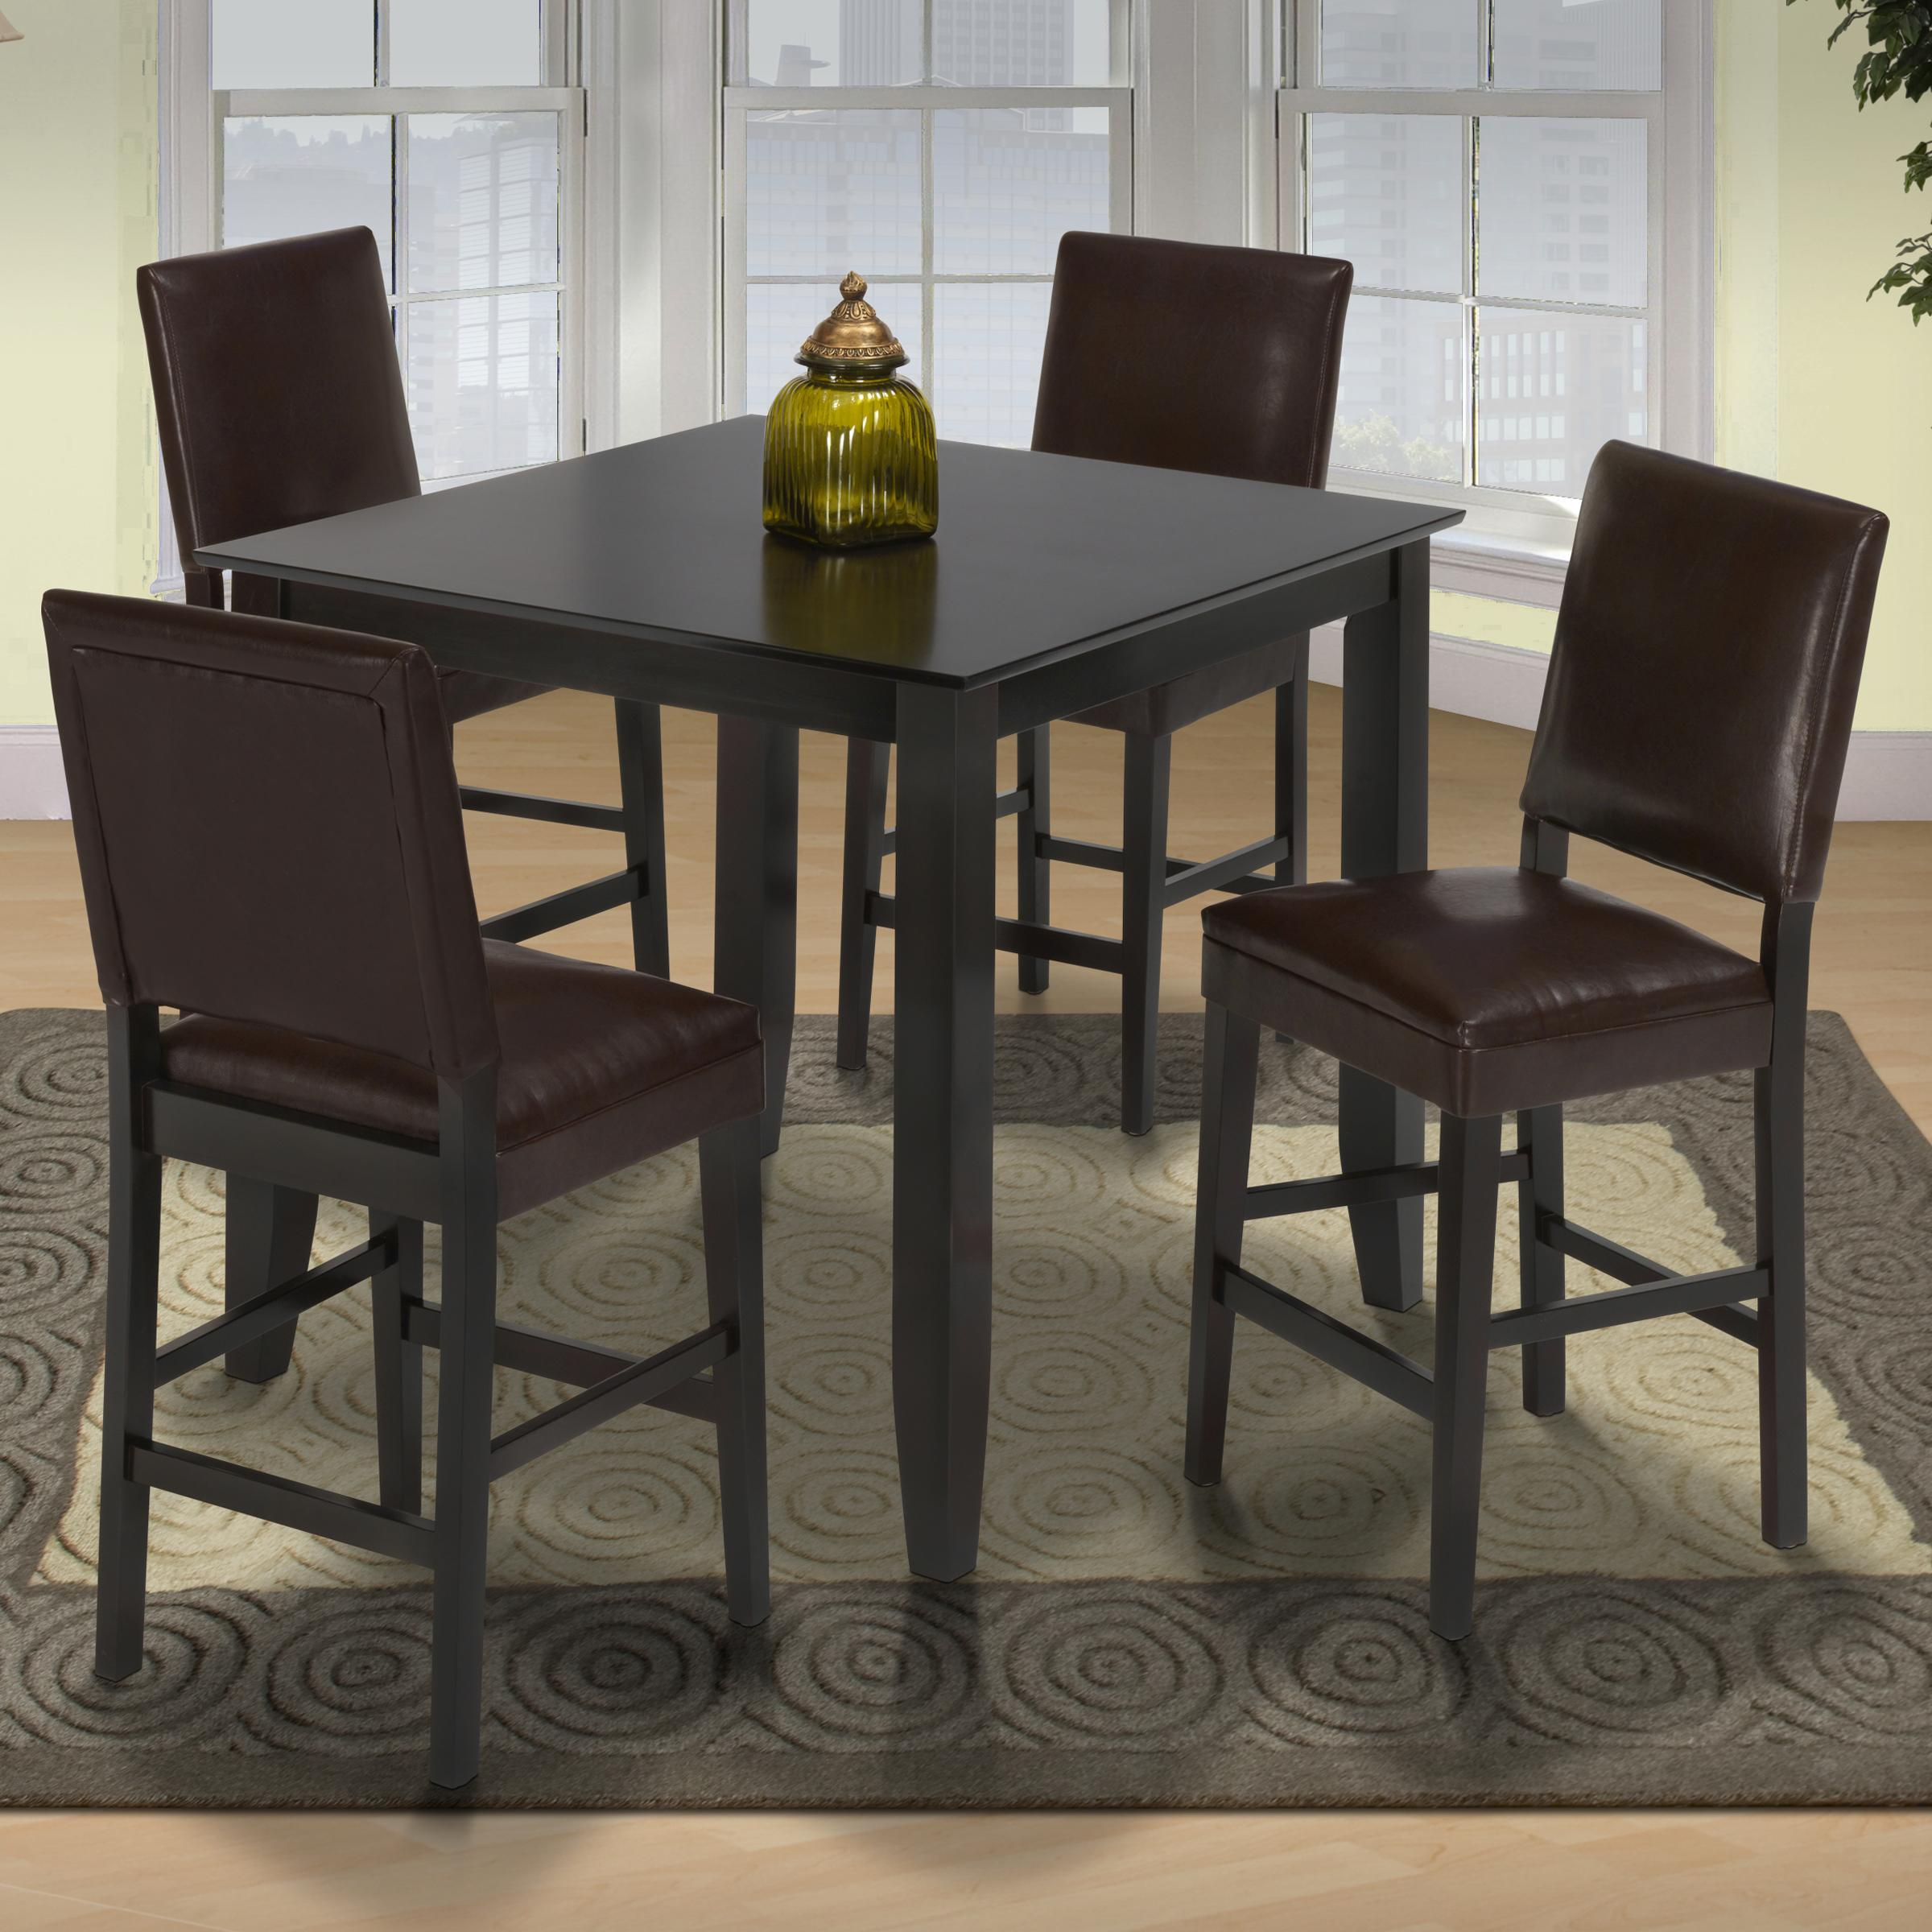 New classic style 19 small pub table and upholstered for Pub style dining sets